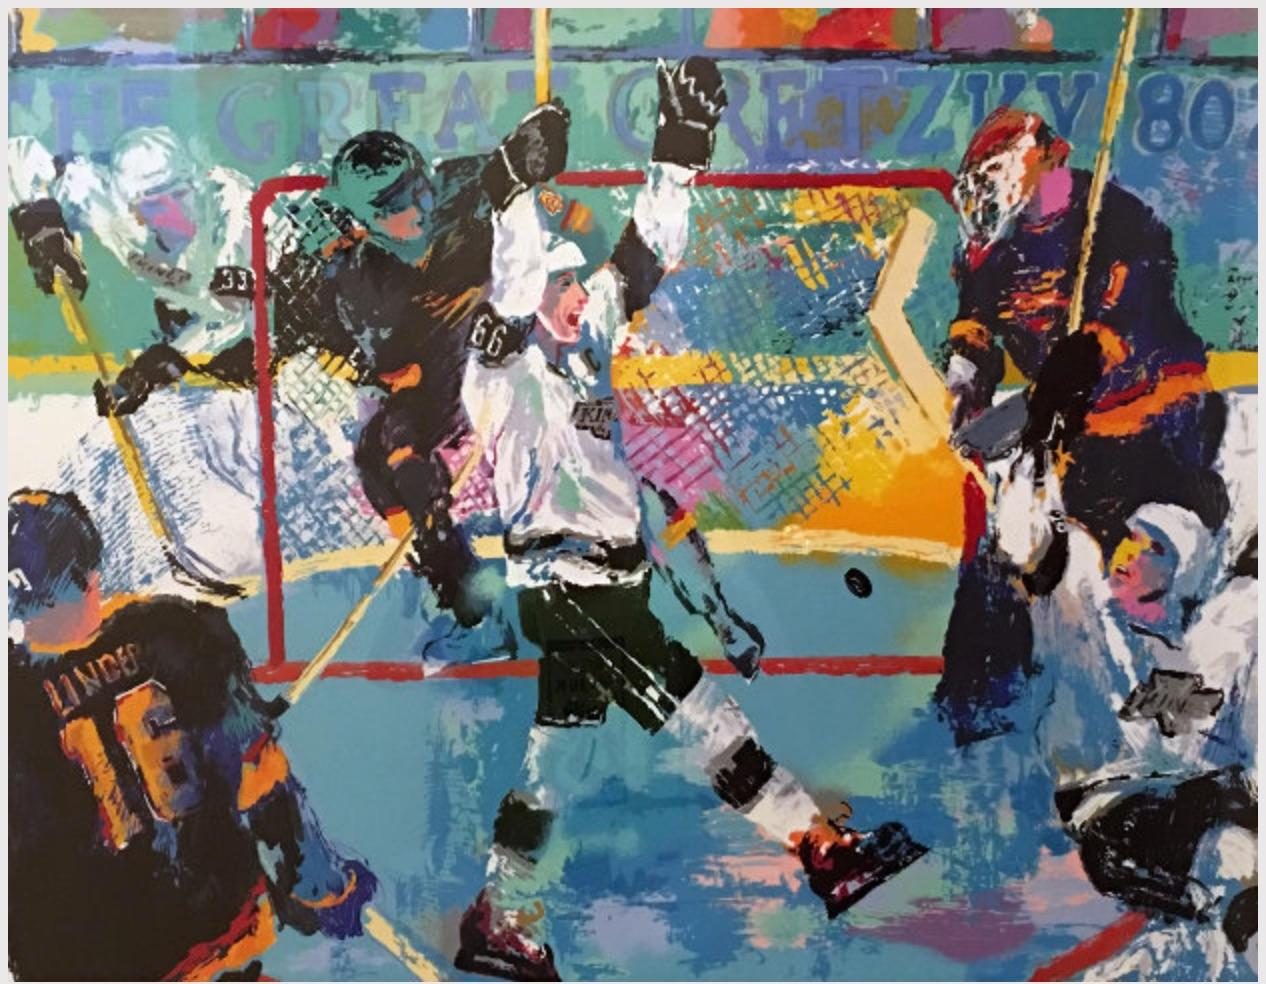 Gretzky's Goal - Limited Edition - Hand signed and numbered by LeRoy Neiman